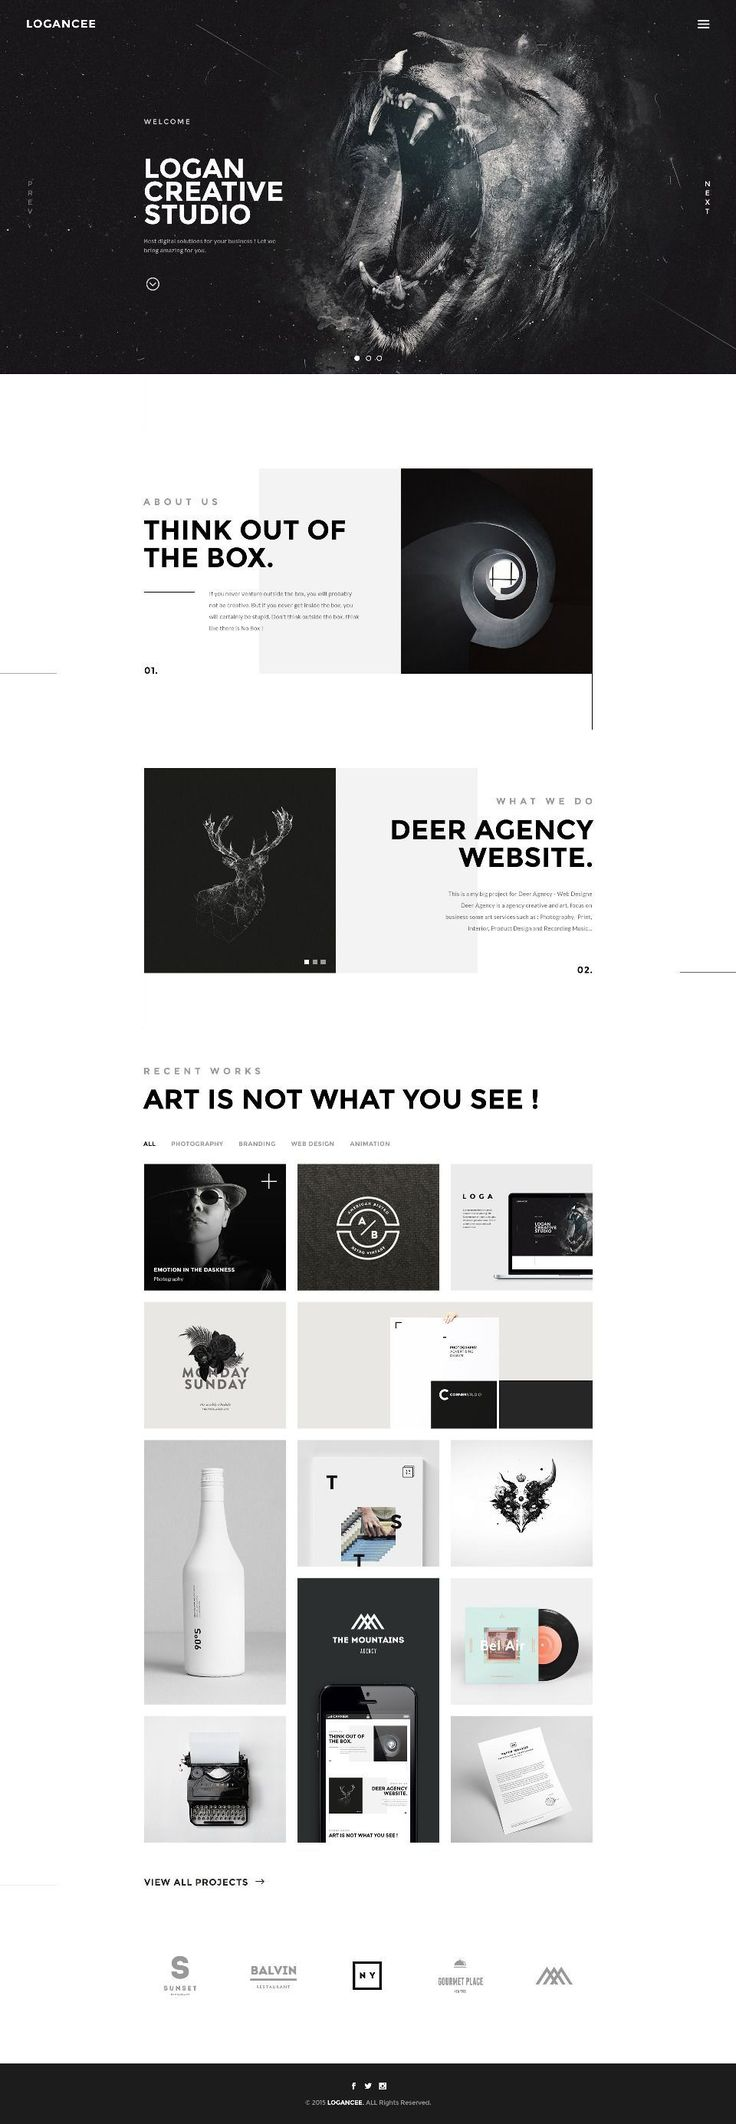 Logancee Web Design Inspiration Part 3